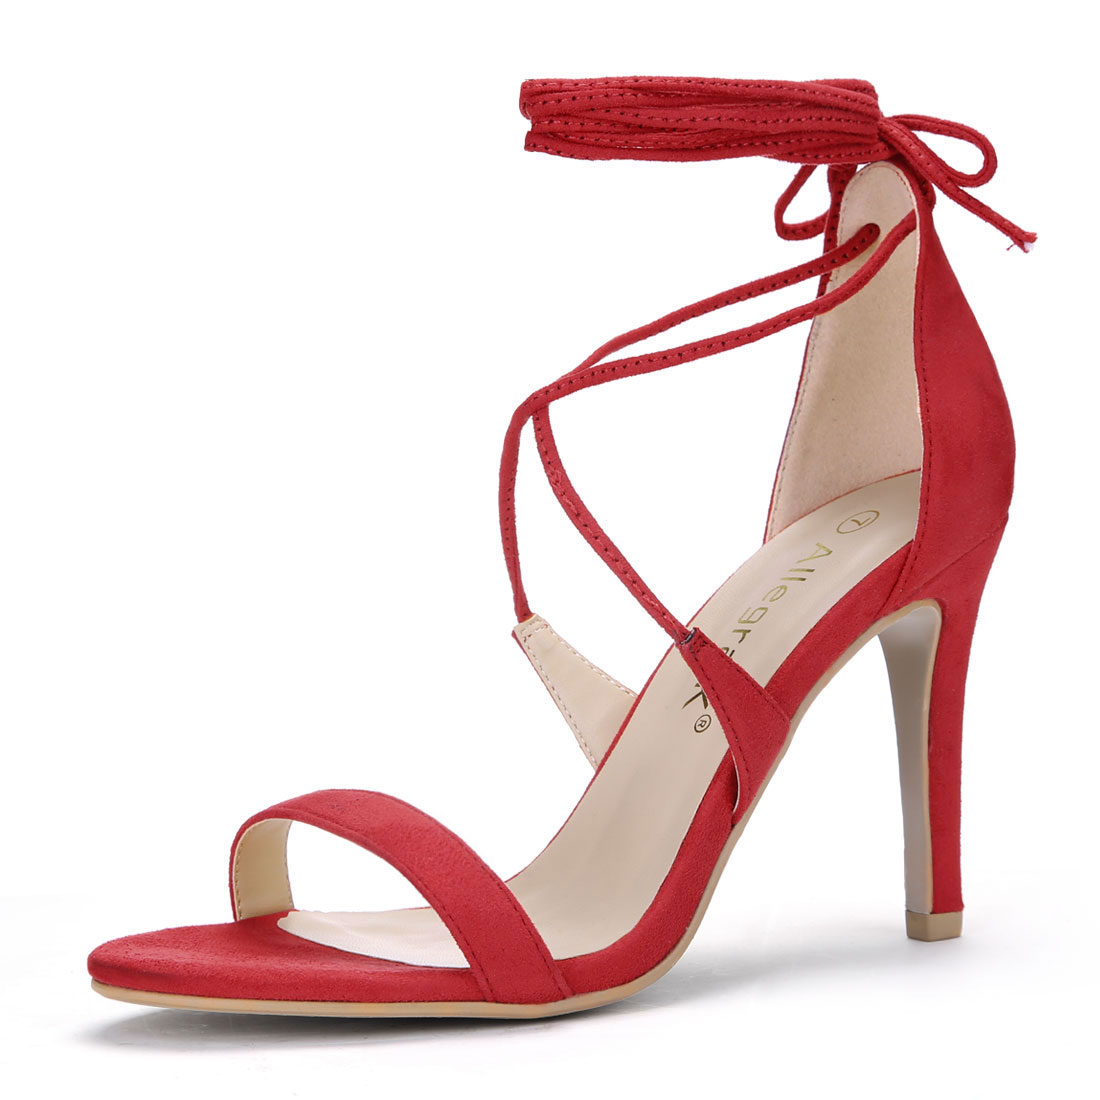 Women Open Toe Stiletto High Heel Lace-Up Sandals Red US 9